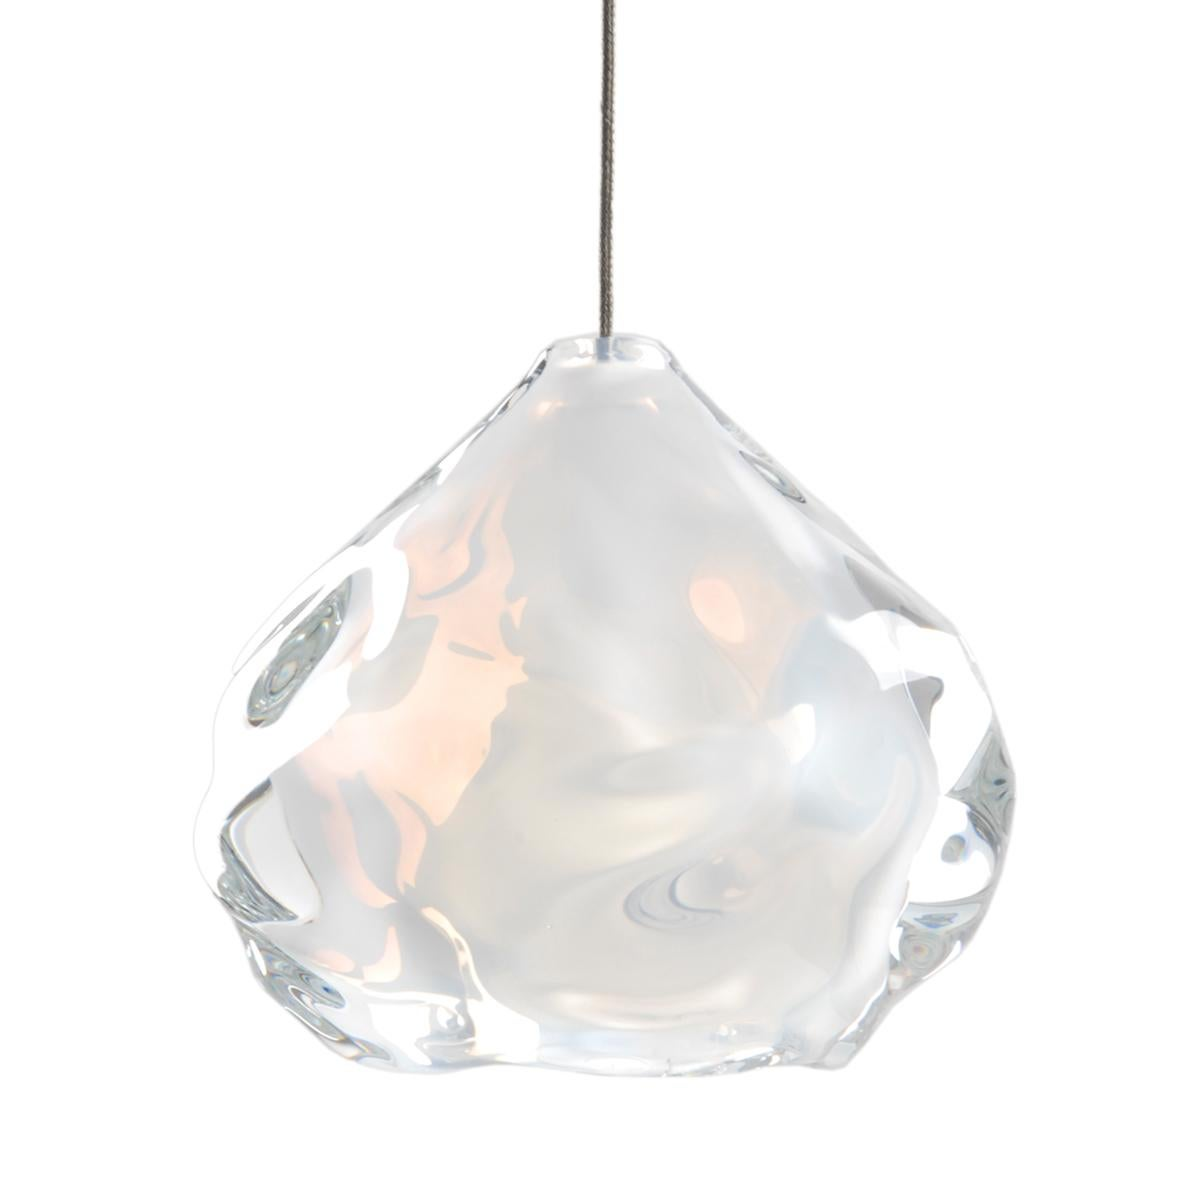 Small Opaline White Happy Pendant Light, Hand Blown Glass - Made to Order